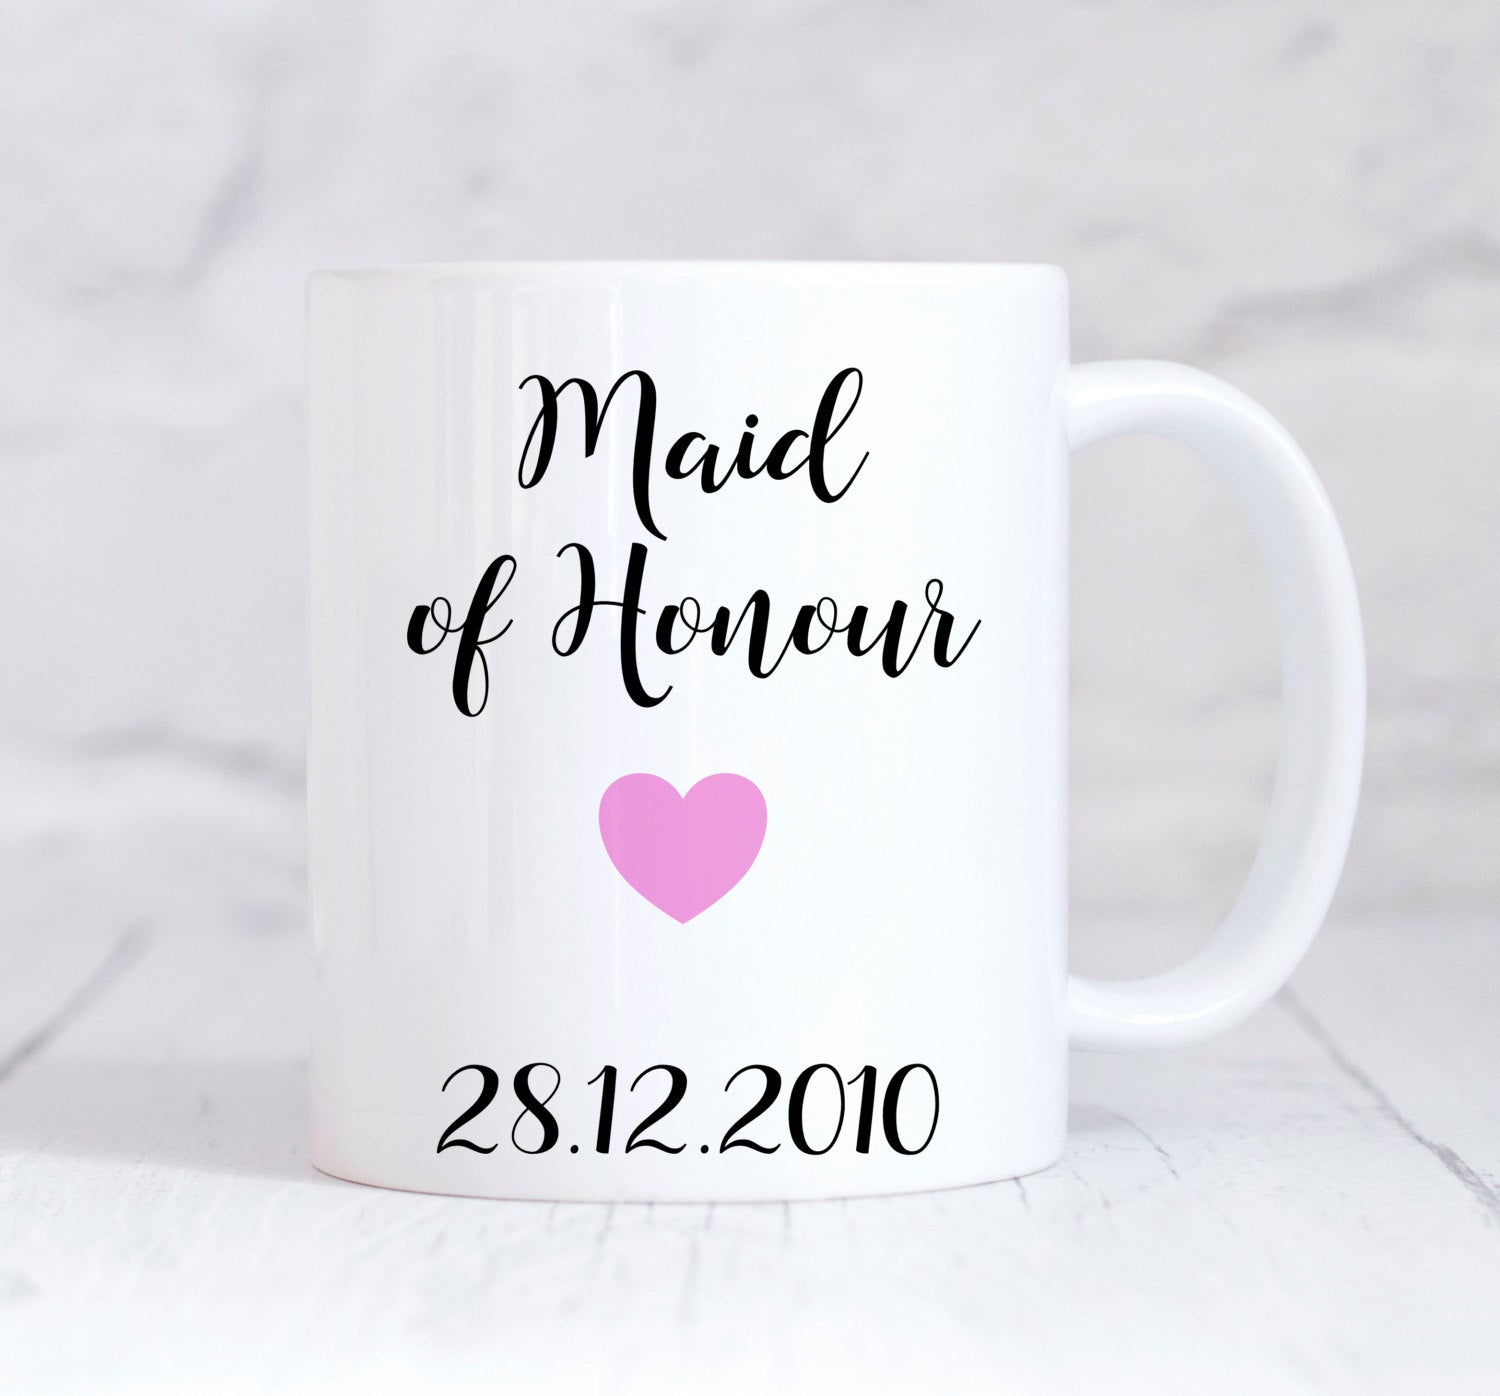 Maid Of Honour Mug, Maid Of Honour Gift, Wedding Thank You Gift, Personalised Wedding Gift, Personalised Mug, Coffee Mug, Tea Mug, Cup